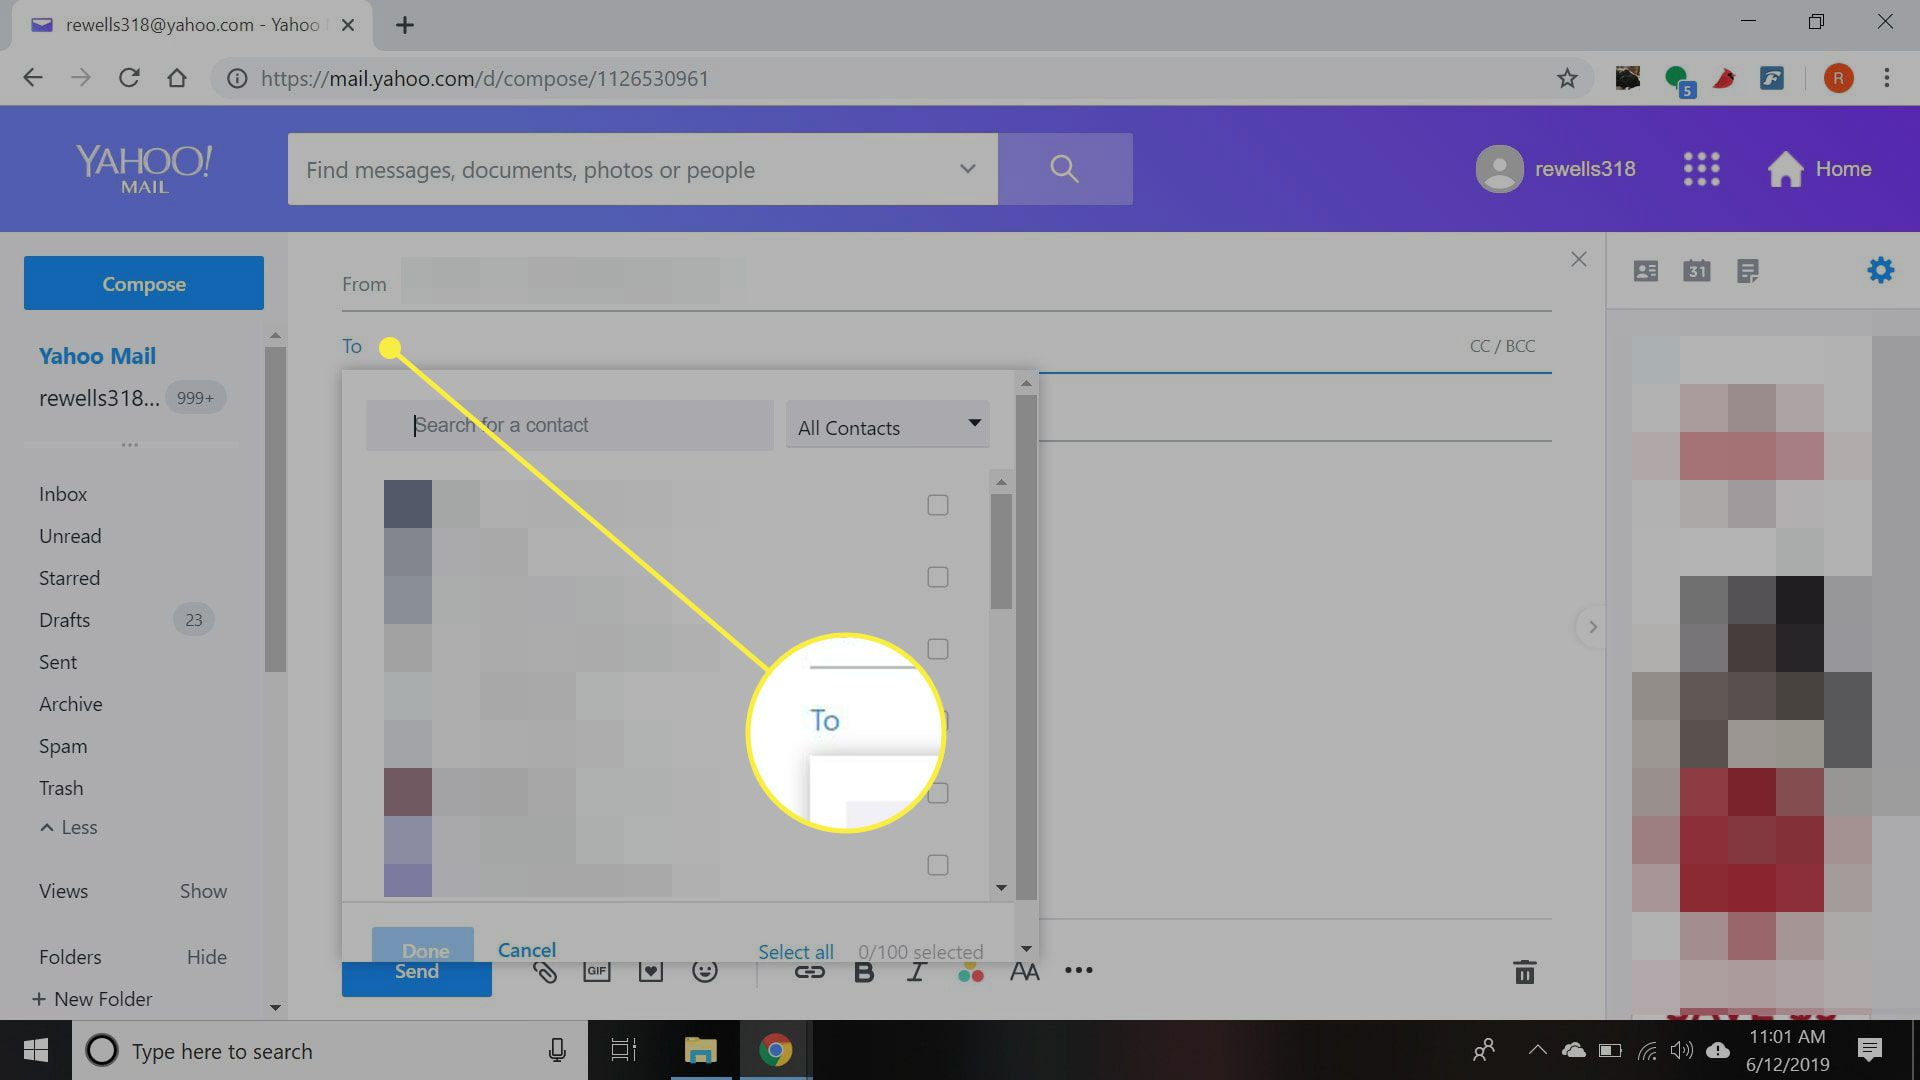 Yahoo Mail with the To field highlighted